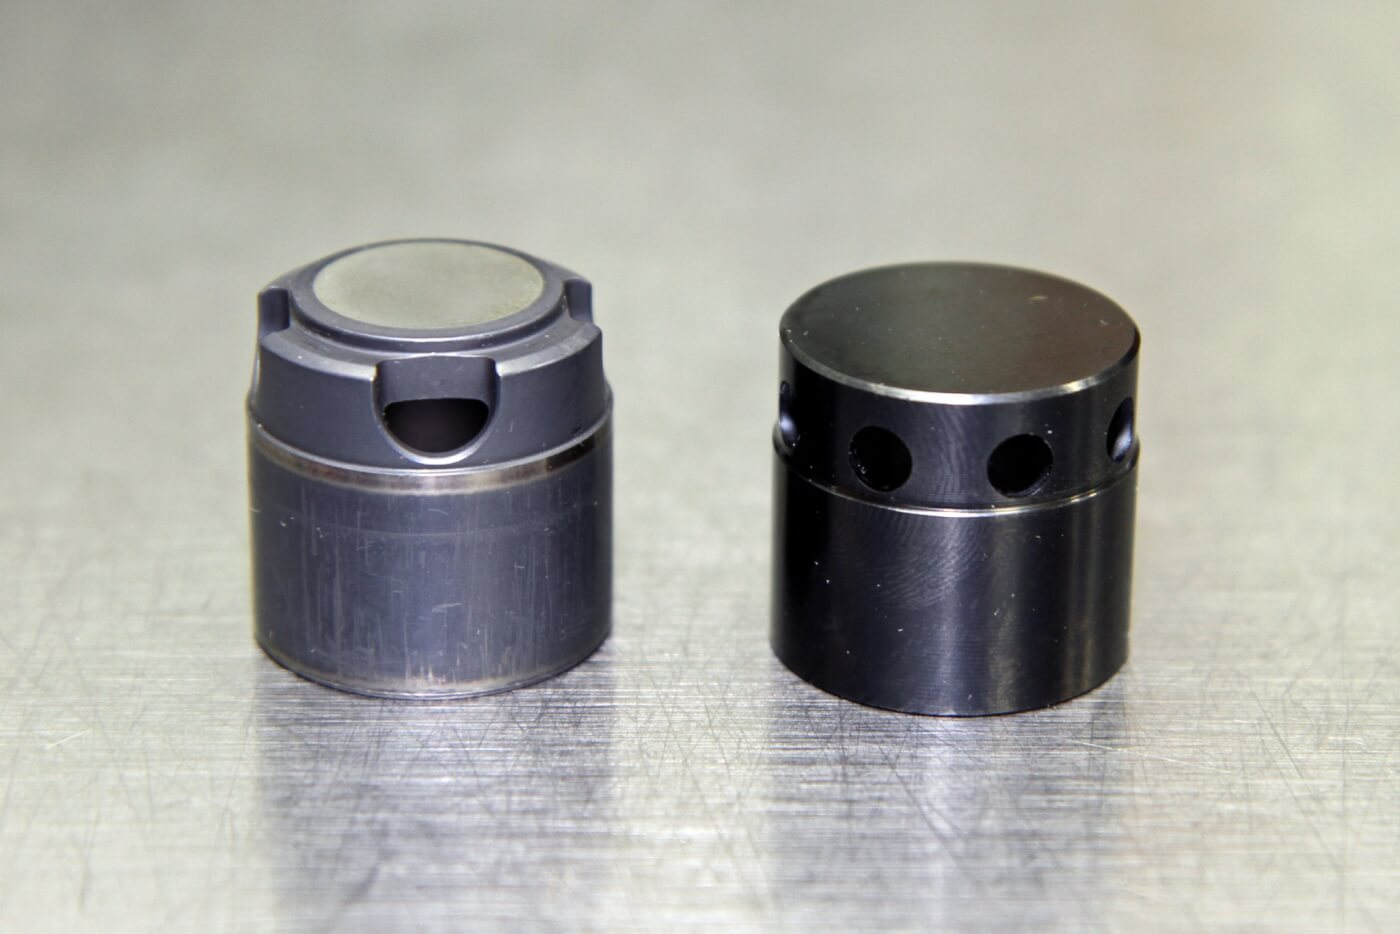 17. On the left is a stock CP3 cam bucket that is used in a standard stroke pump while the bucket on the right is the custom designed unit that S&S uses for their 12mm and 14mm pumps. They use a modified factory bucket for their 10mm pump.